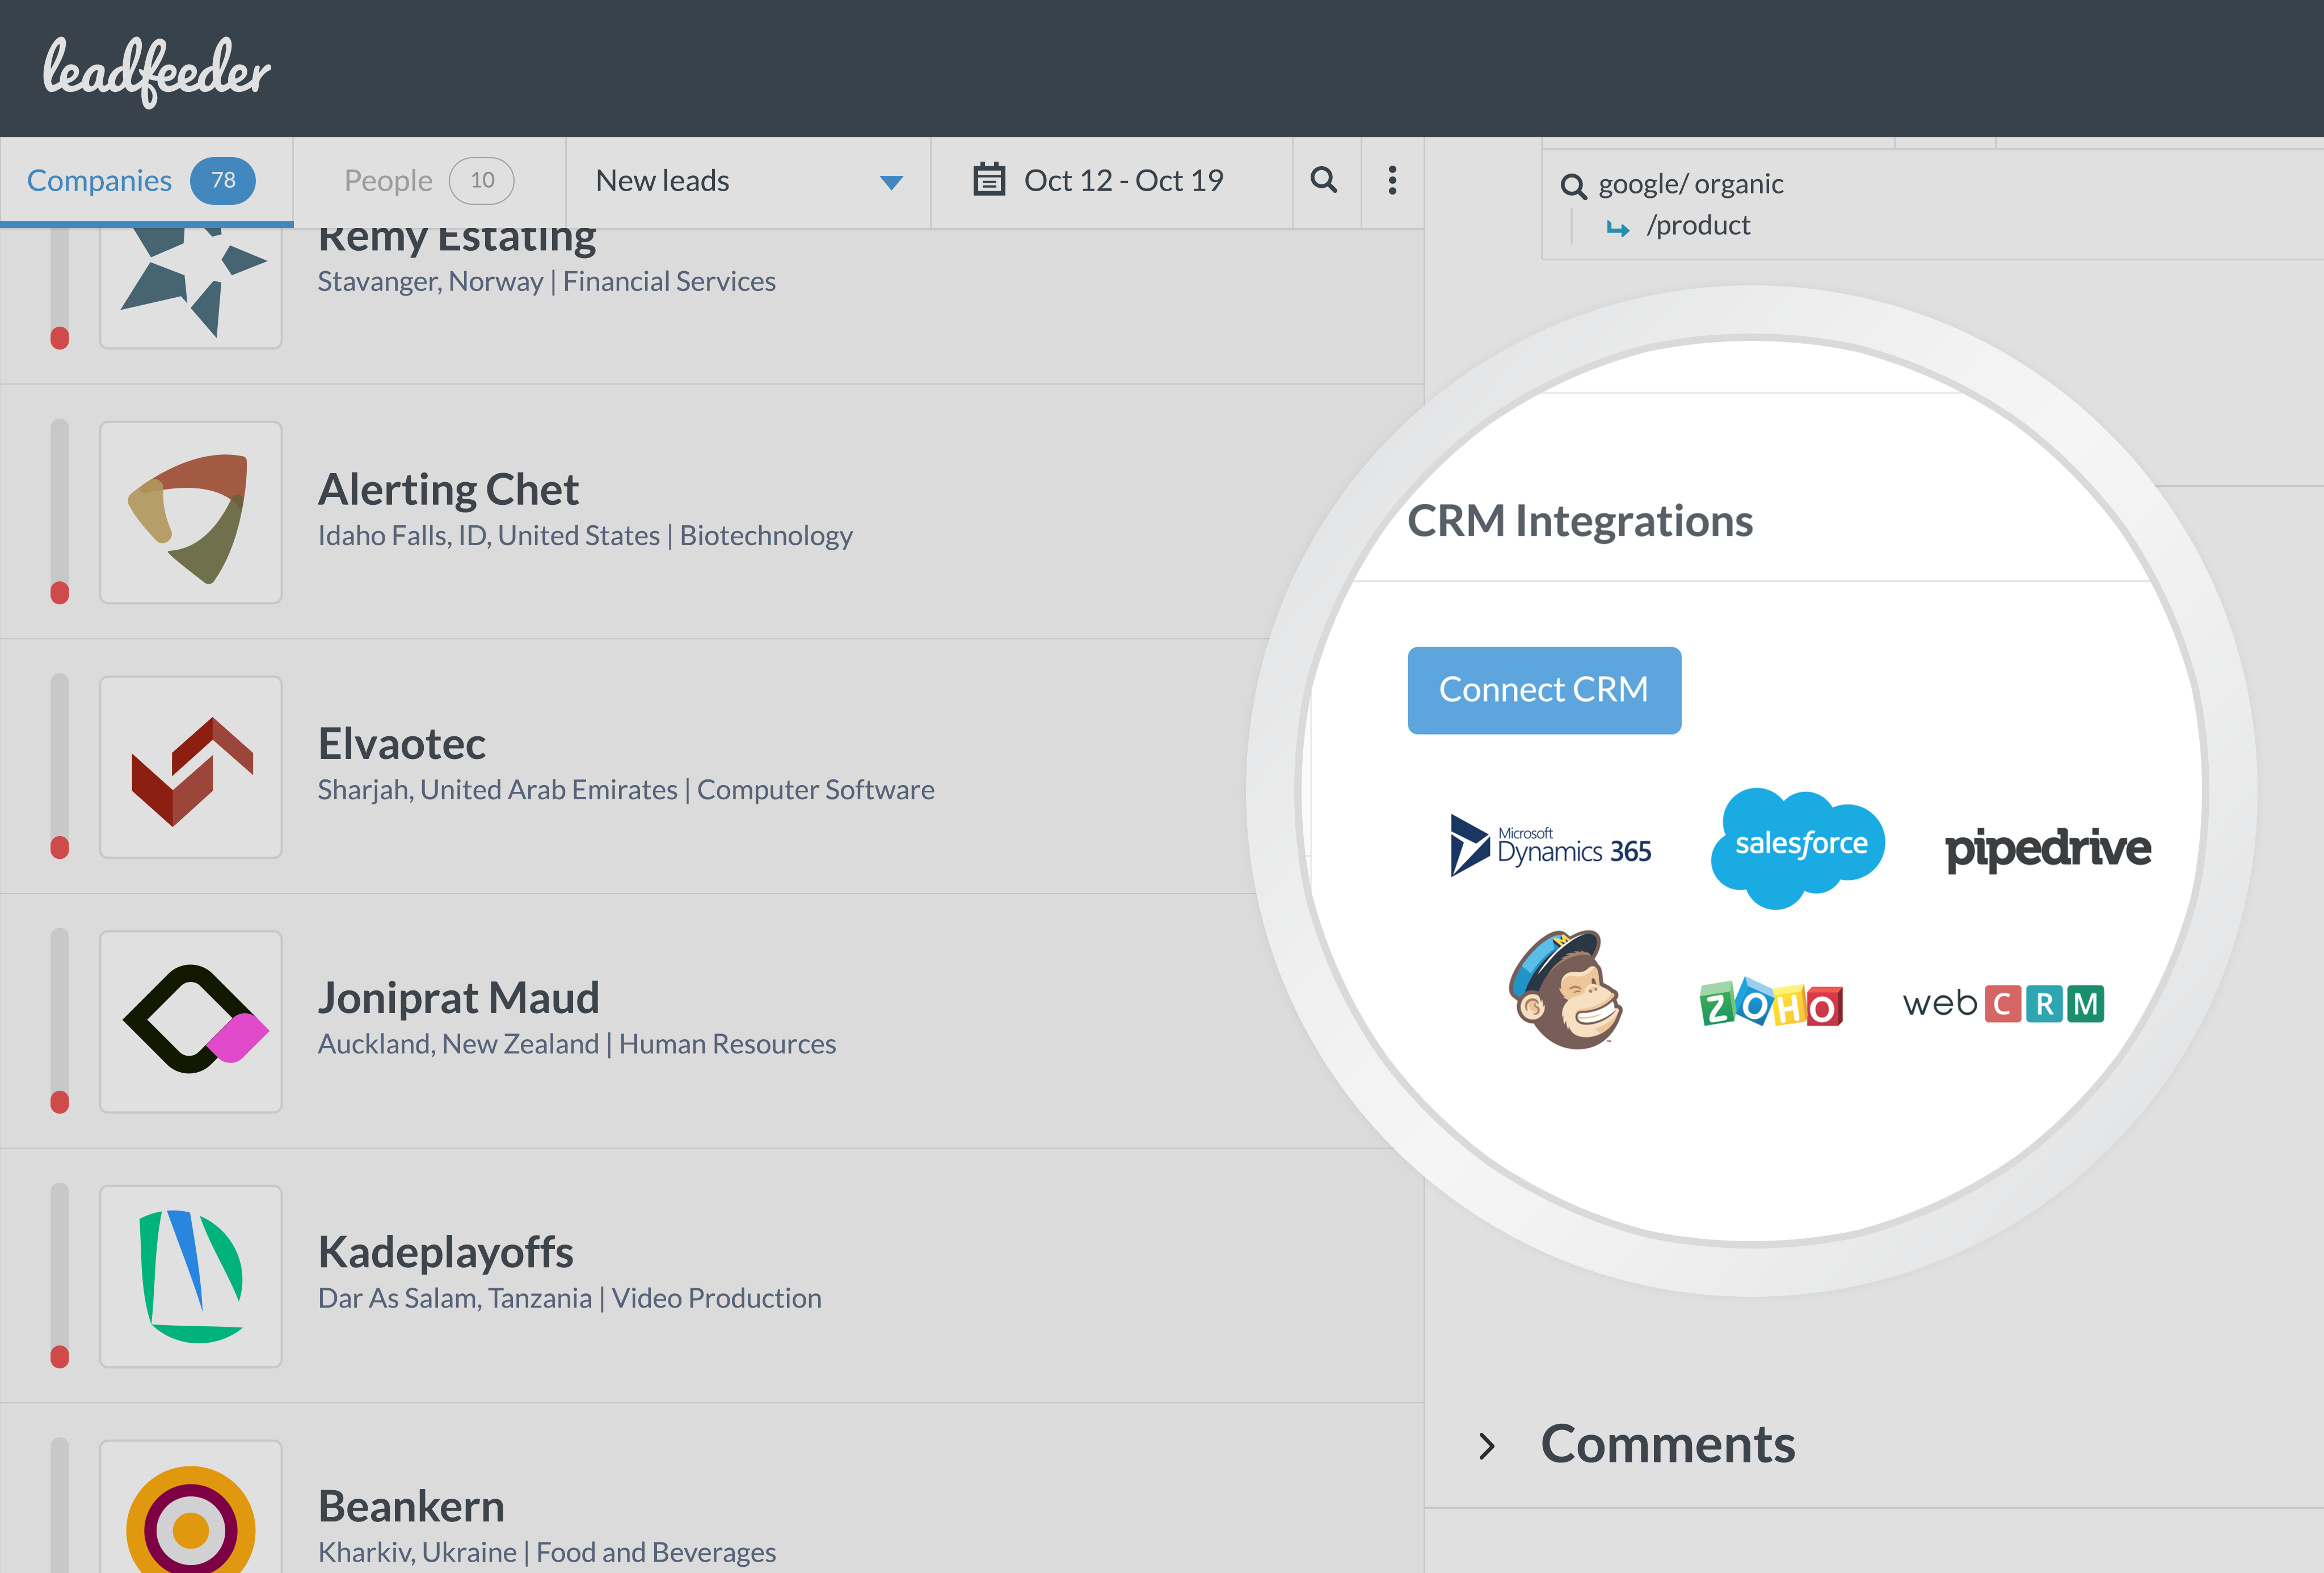 Leadfeeder integrates with CRM systems